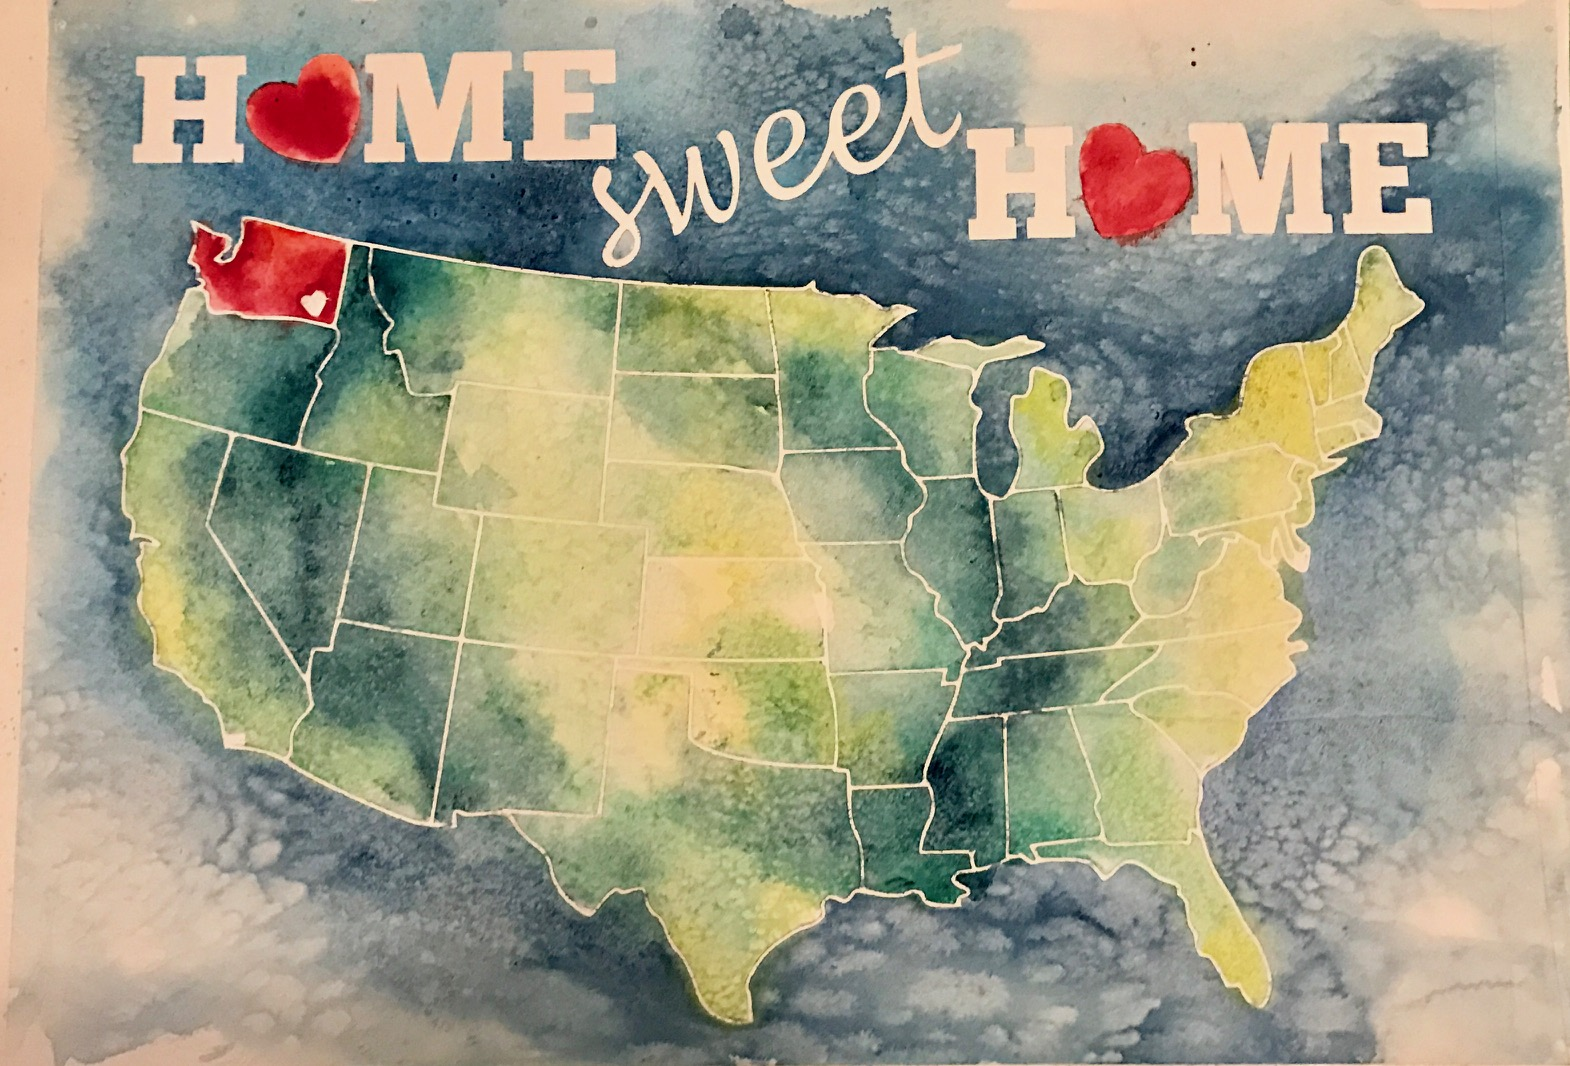 Home sweet home painting - Painting Home Sweet Home Choose Which State S You Highlight And Your Own Colors